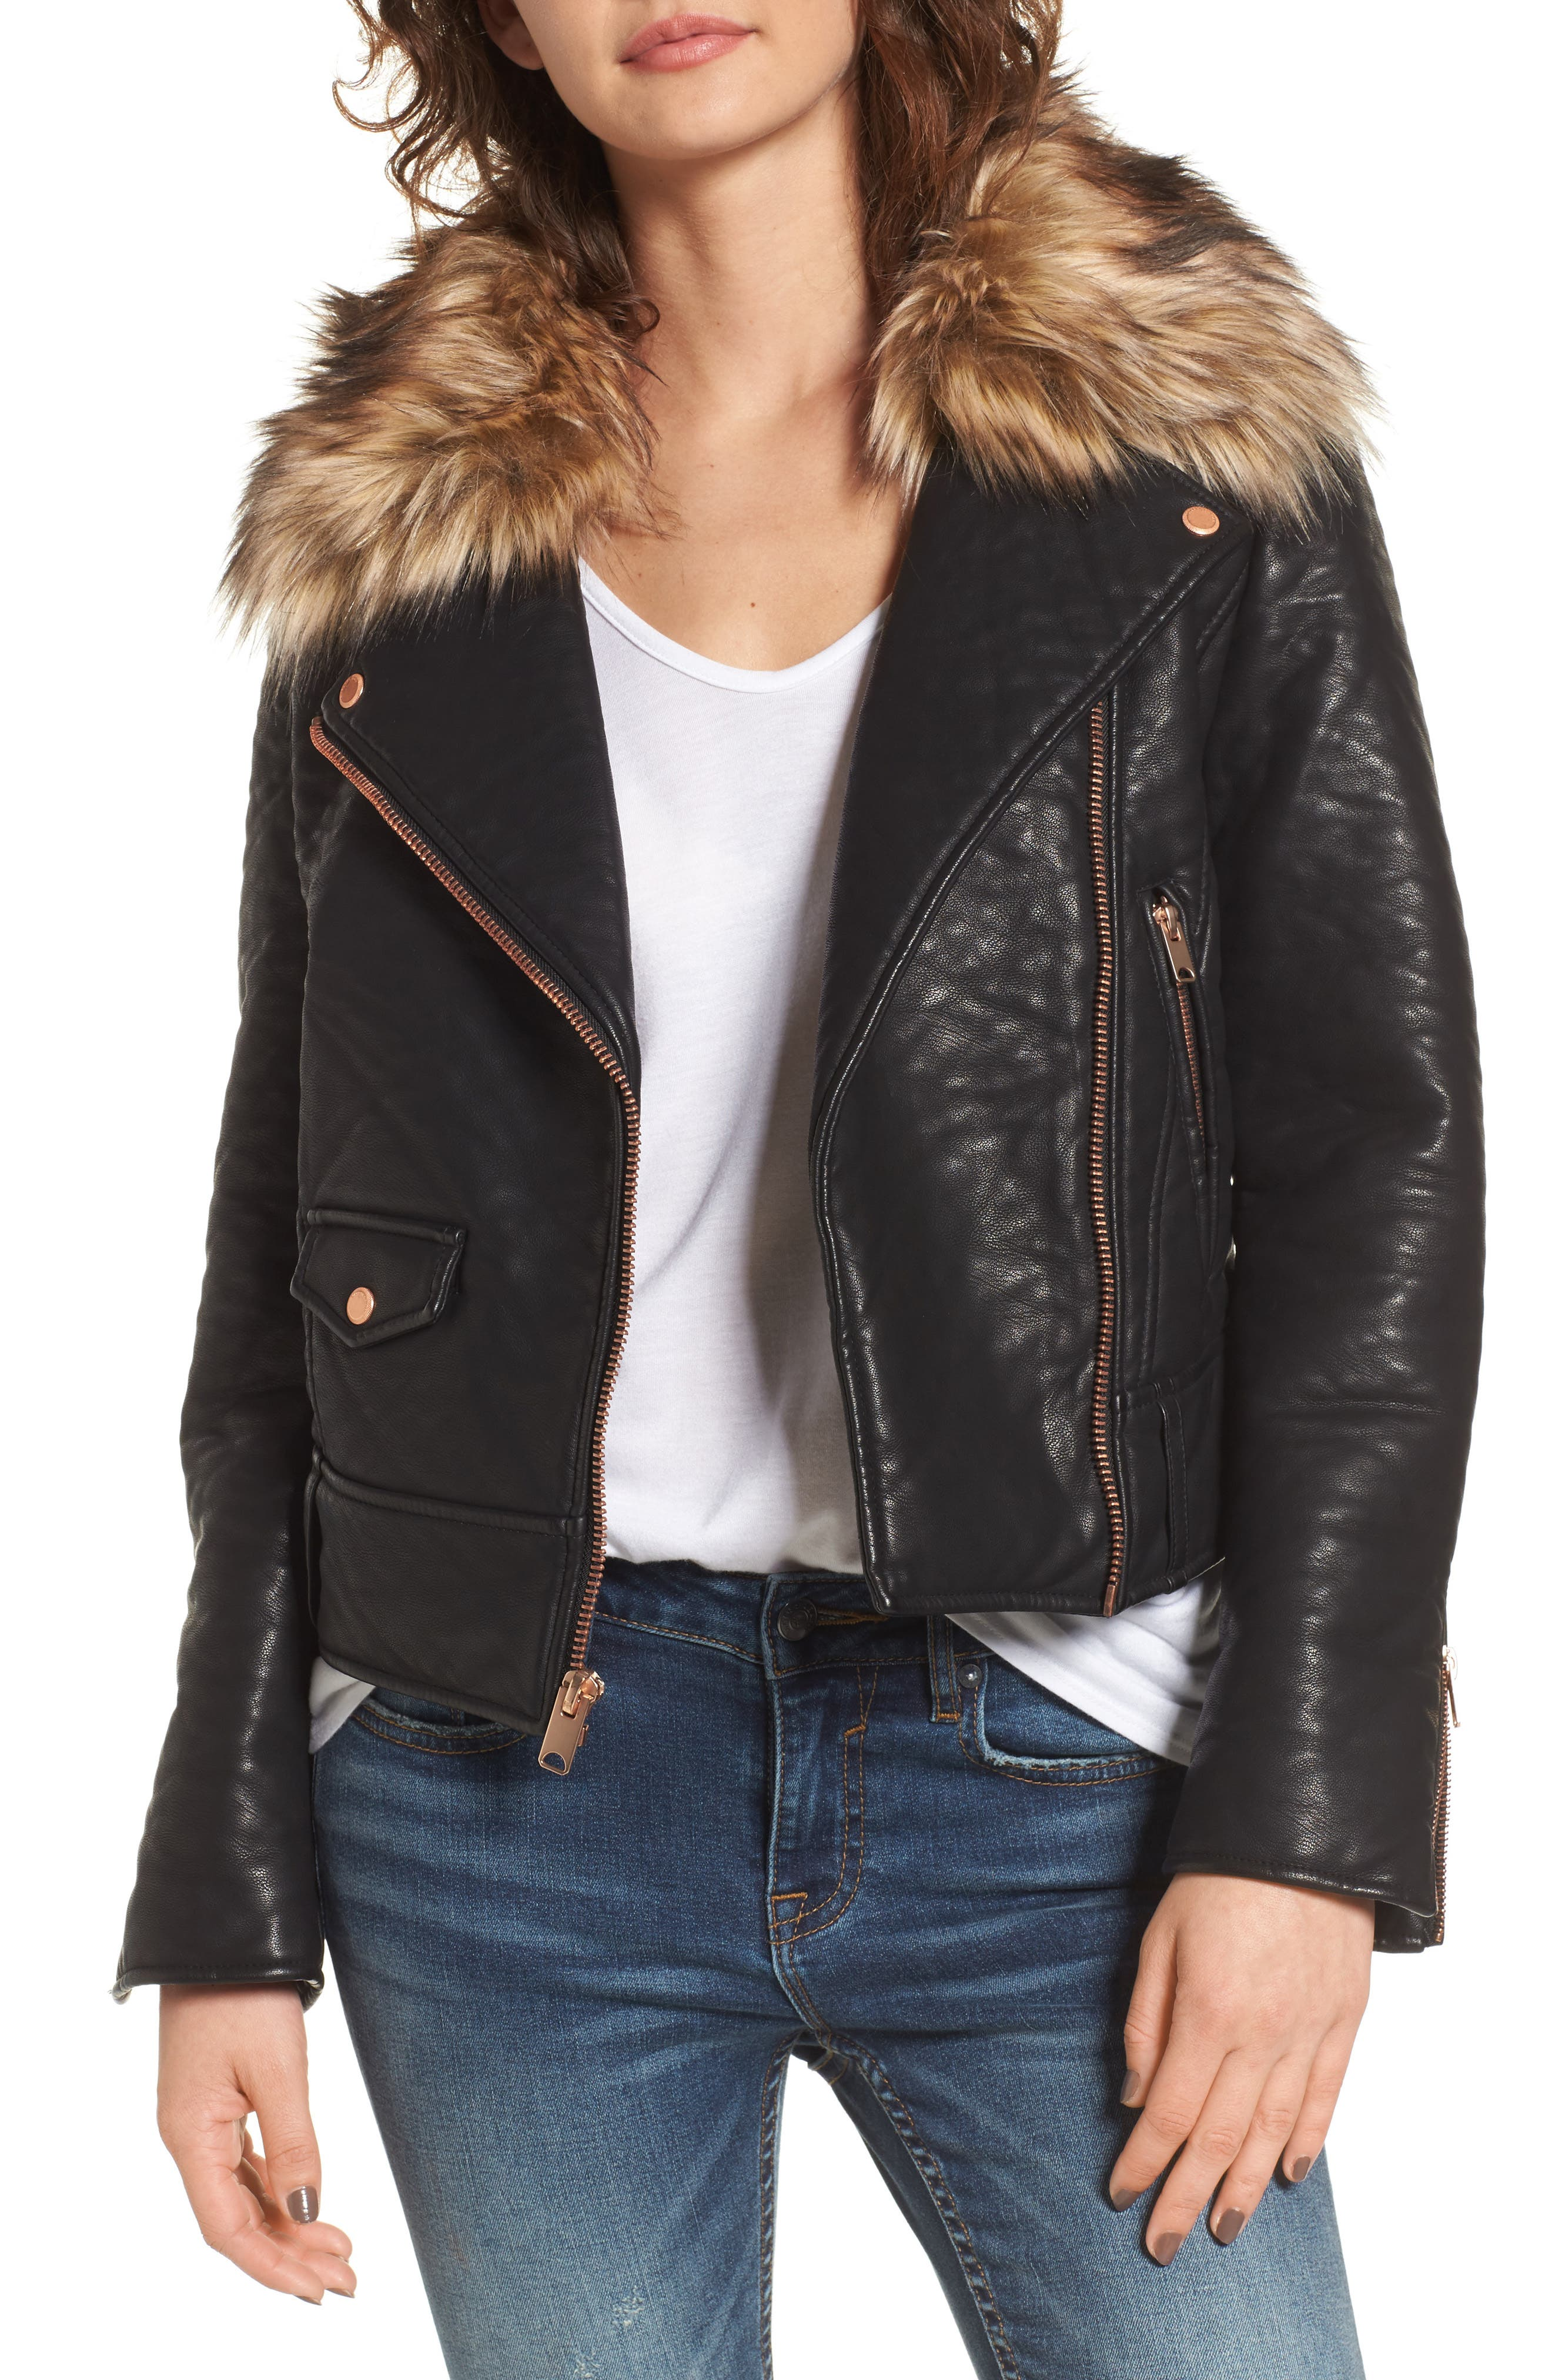 Find a full collection of Women's Plus Size Coats and Jackets,Plus Size Leather and Faux Fur in modern and classic styles, also find plus size dresses, jeans, career, pants, shirts, sweaters, coats .